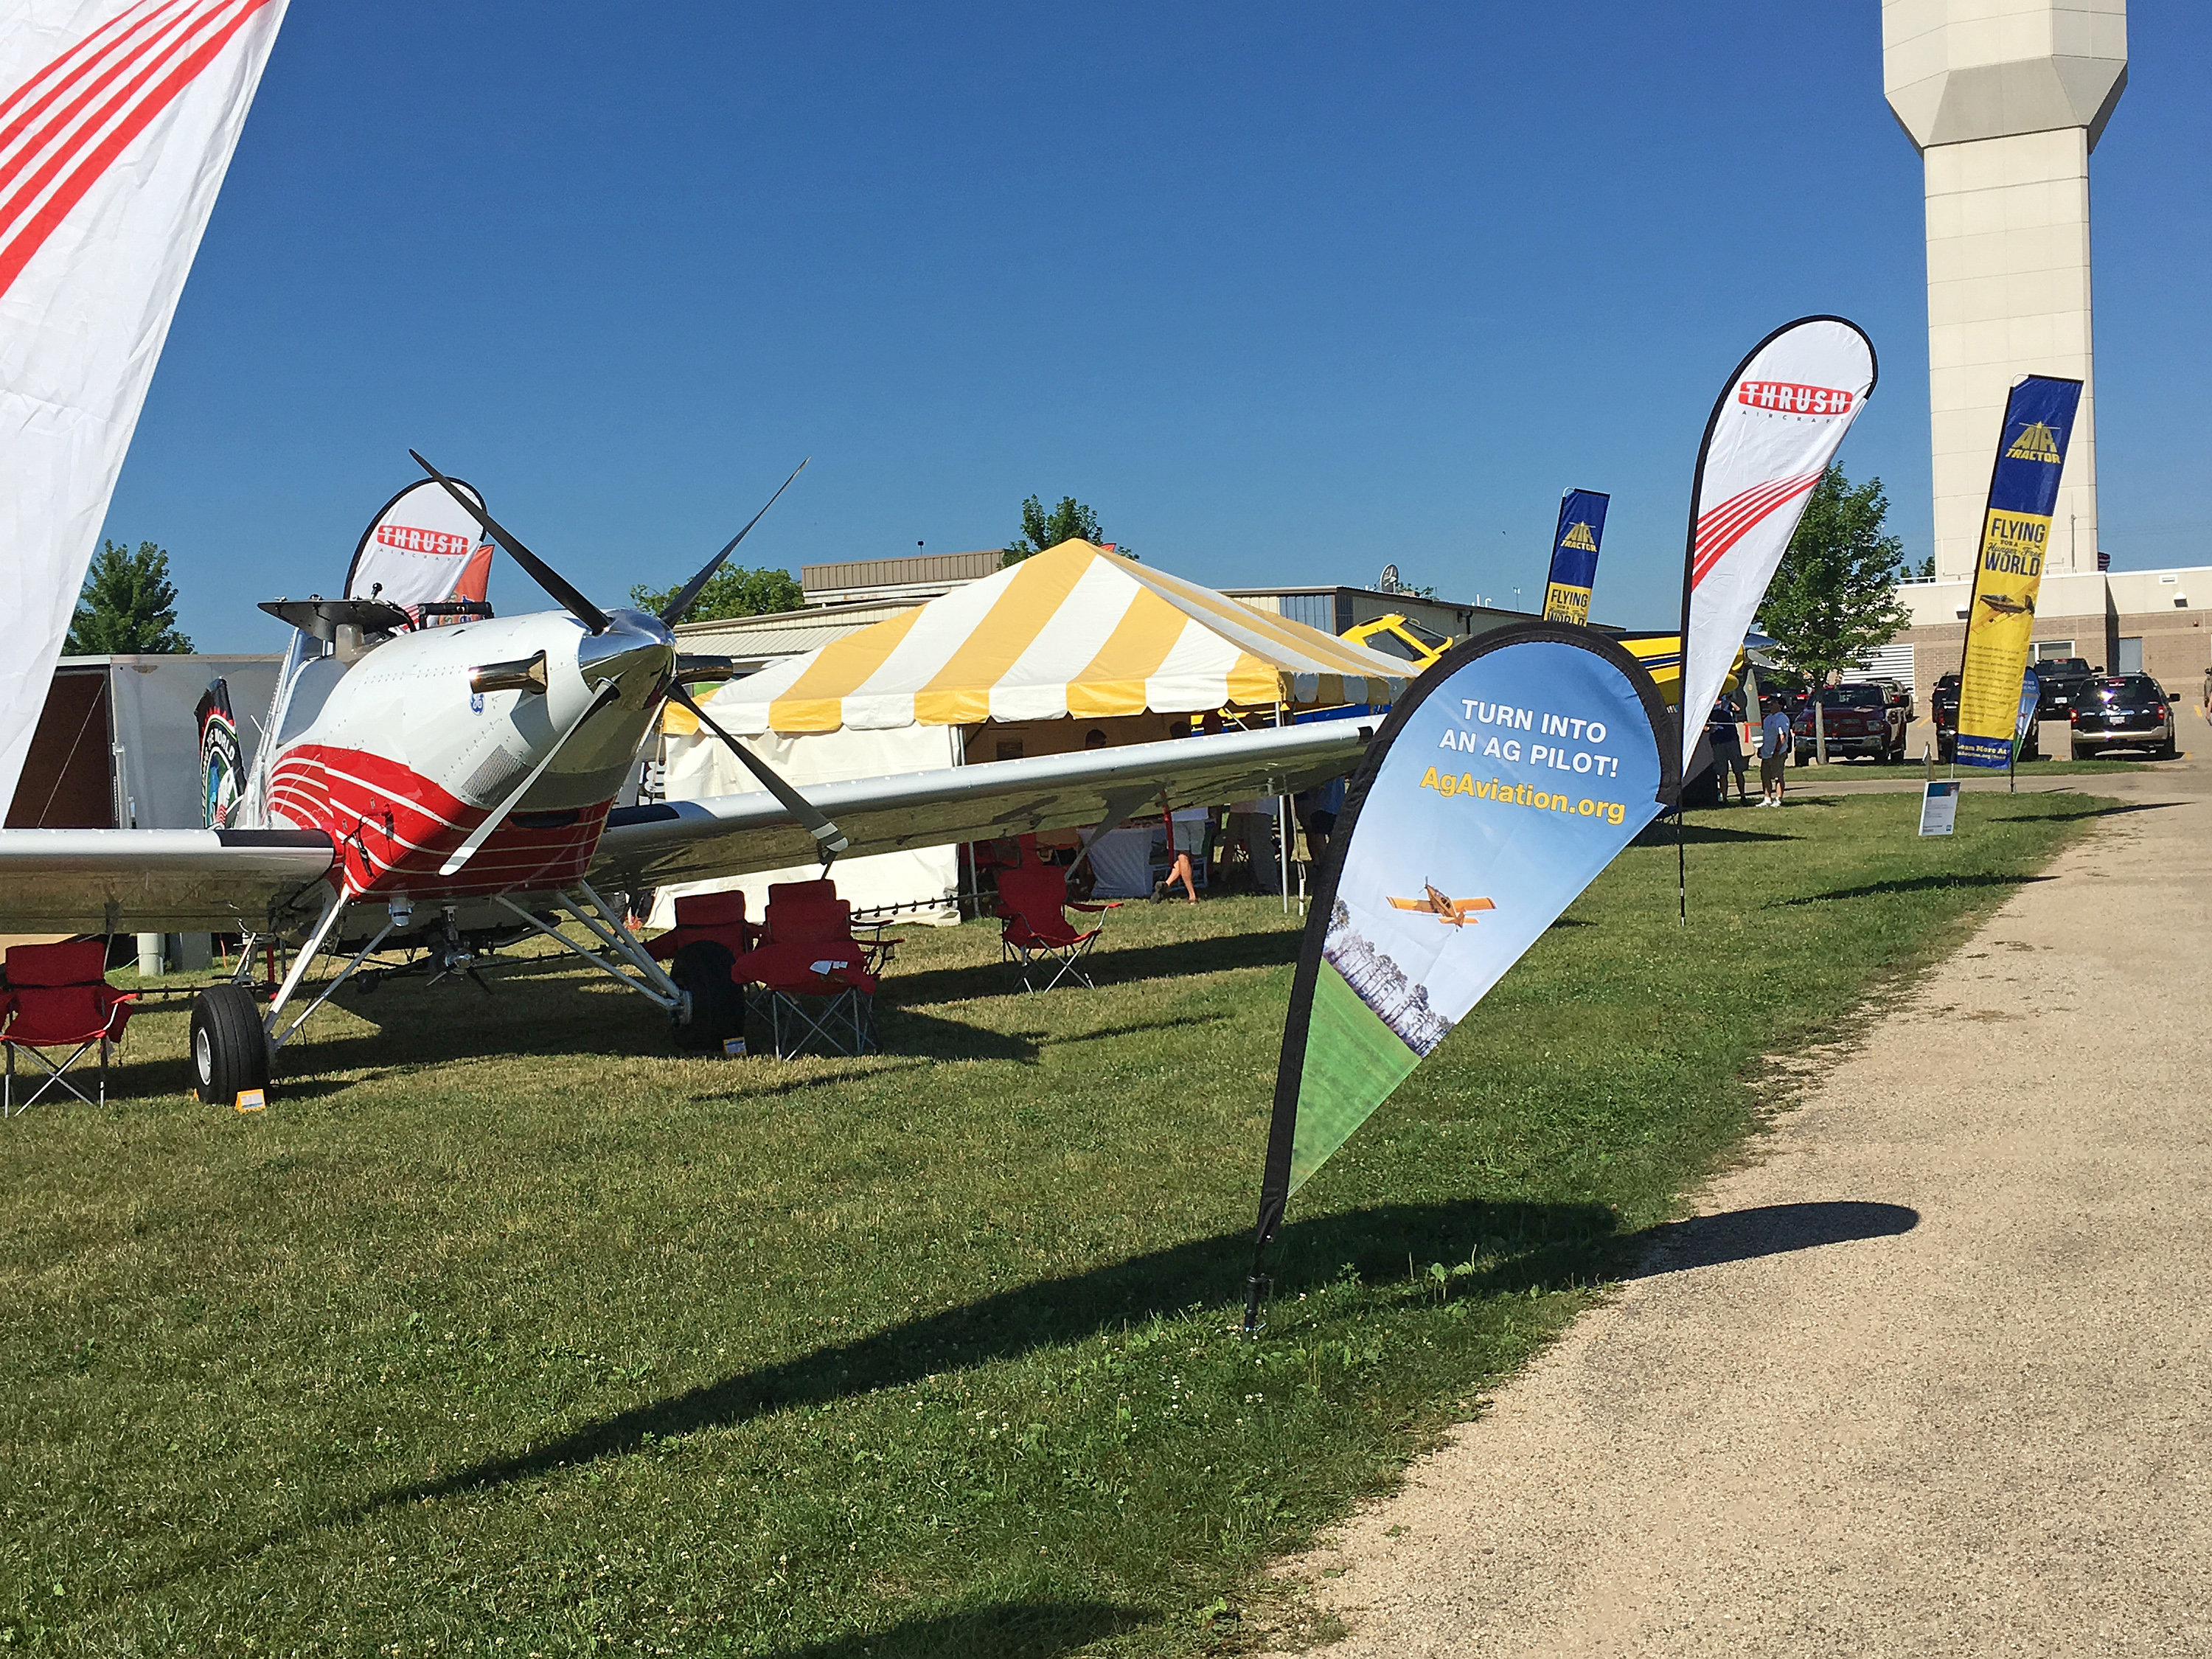 The NAAA booth at 2016 AirVenture. Thrush Aircraft, Air Tractor, Flying Tigers and Eagle Vistas also contributed.